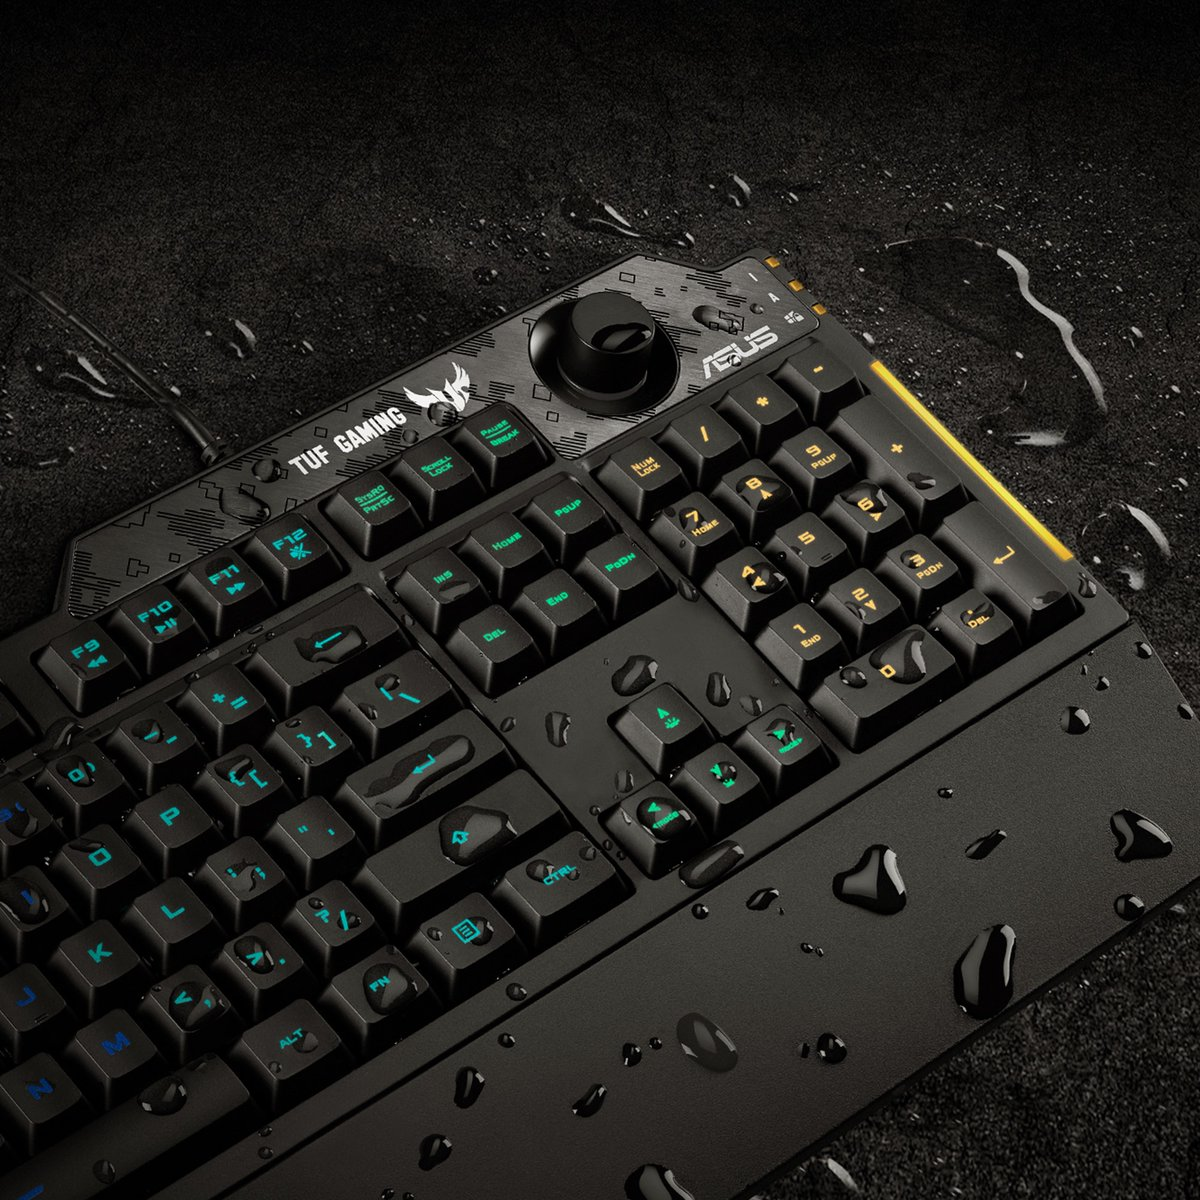 We know what happens in the gaming battlefield. TUF Gaming K1 features a specialized coating with spill-resistance up to 300ml ensuring that accidents with cans or cups won't kill the action.  Discover: https://t.co/ZZv3K2DH9h https://t.co/j6V5gCxsVo